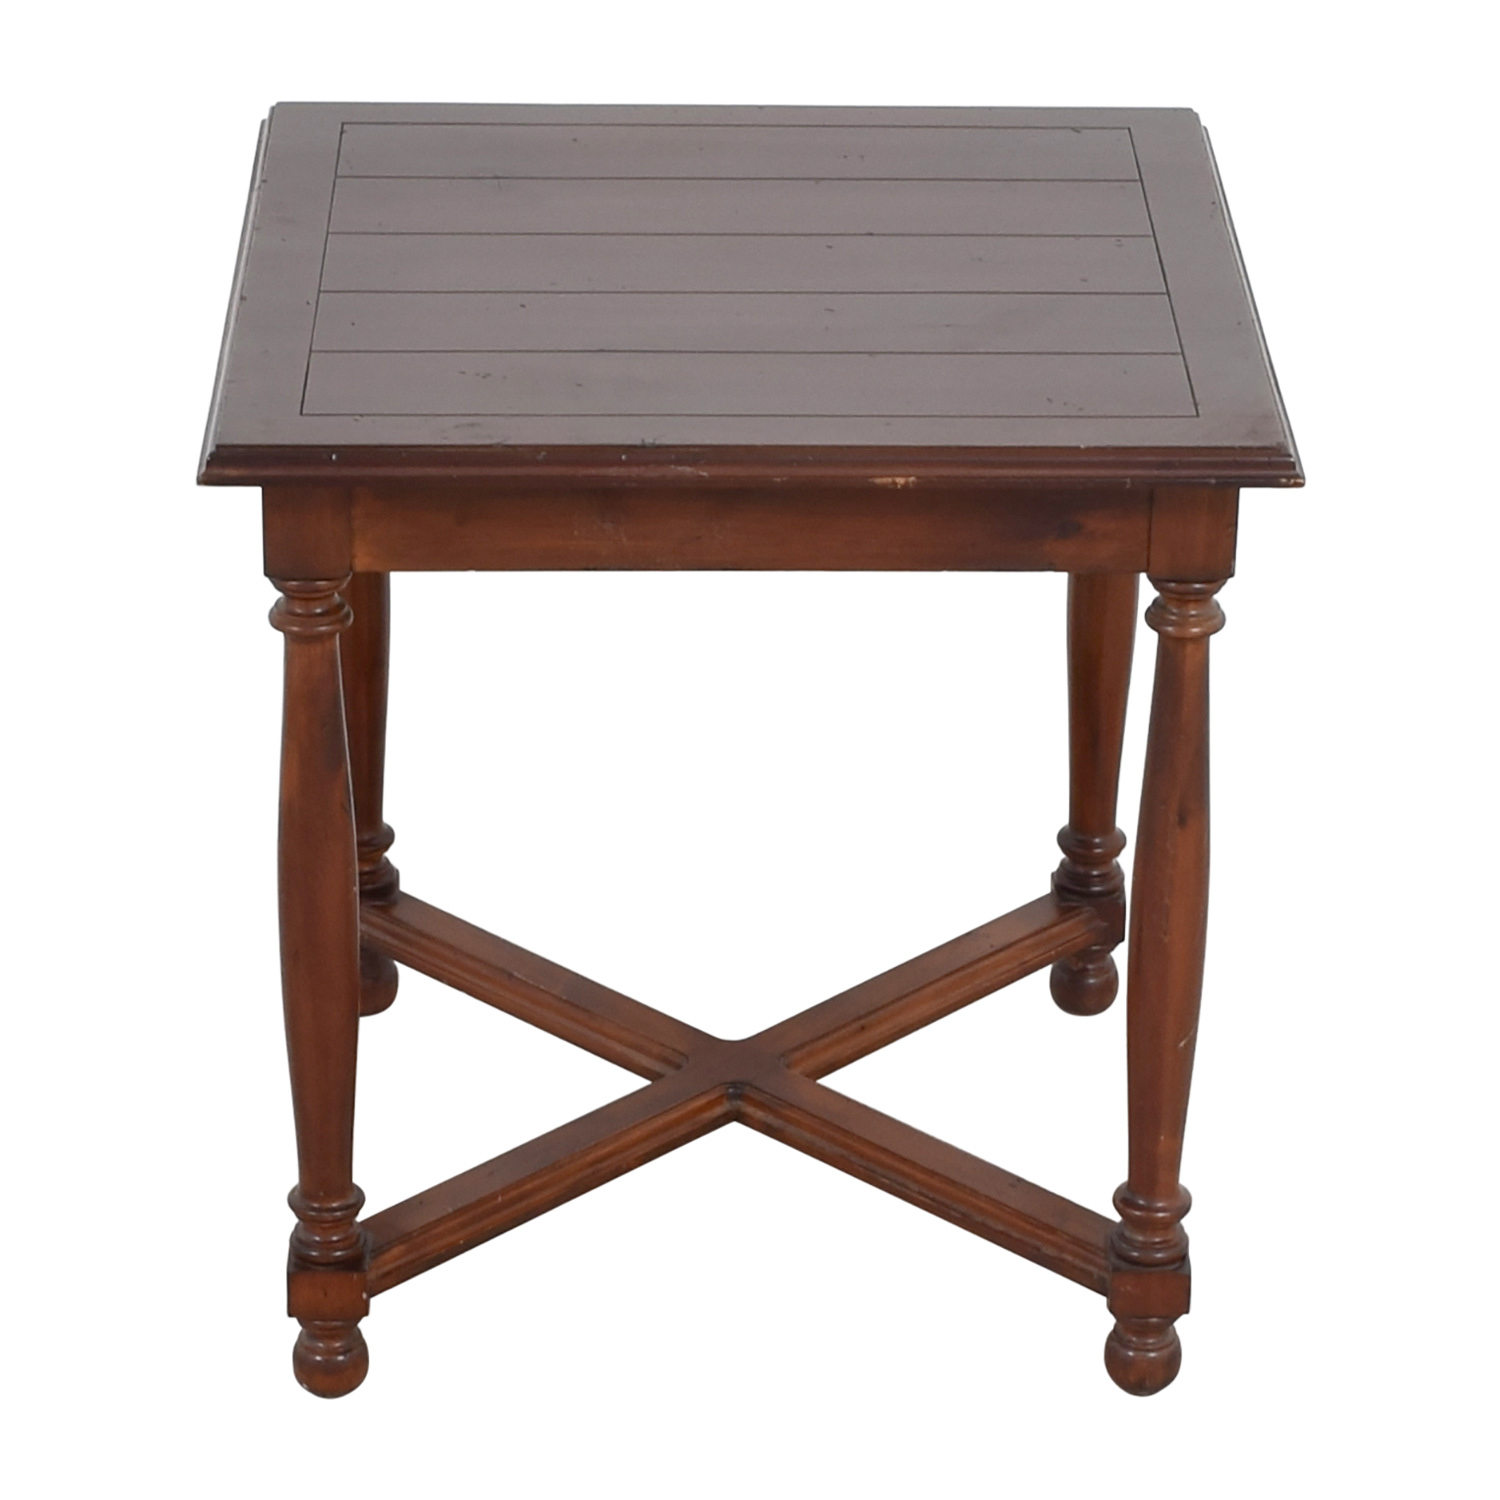 Furniture Masters Furniture Masters Crossed Base End Table Tables